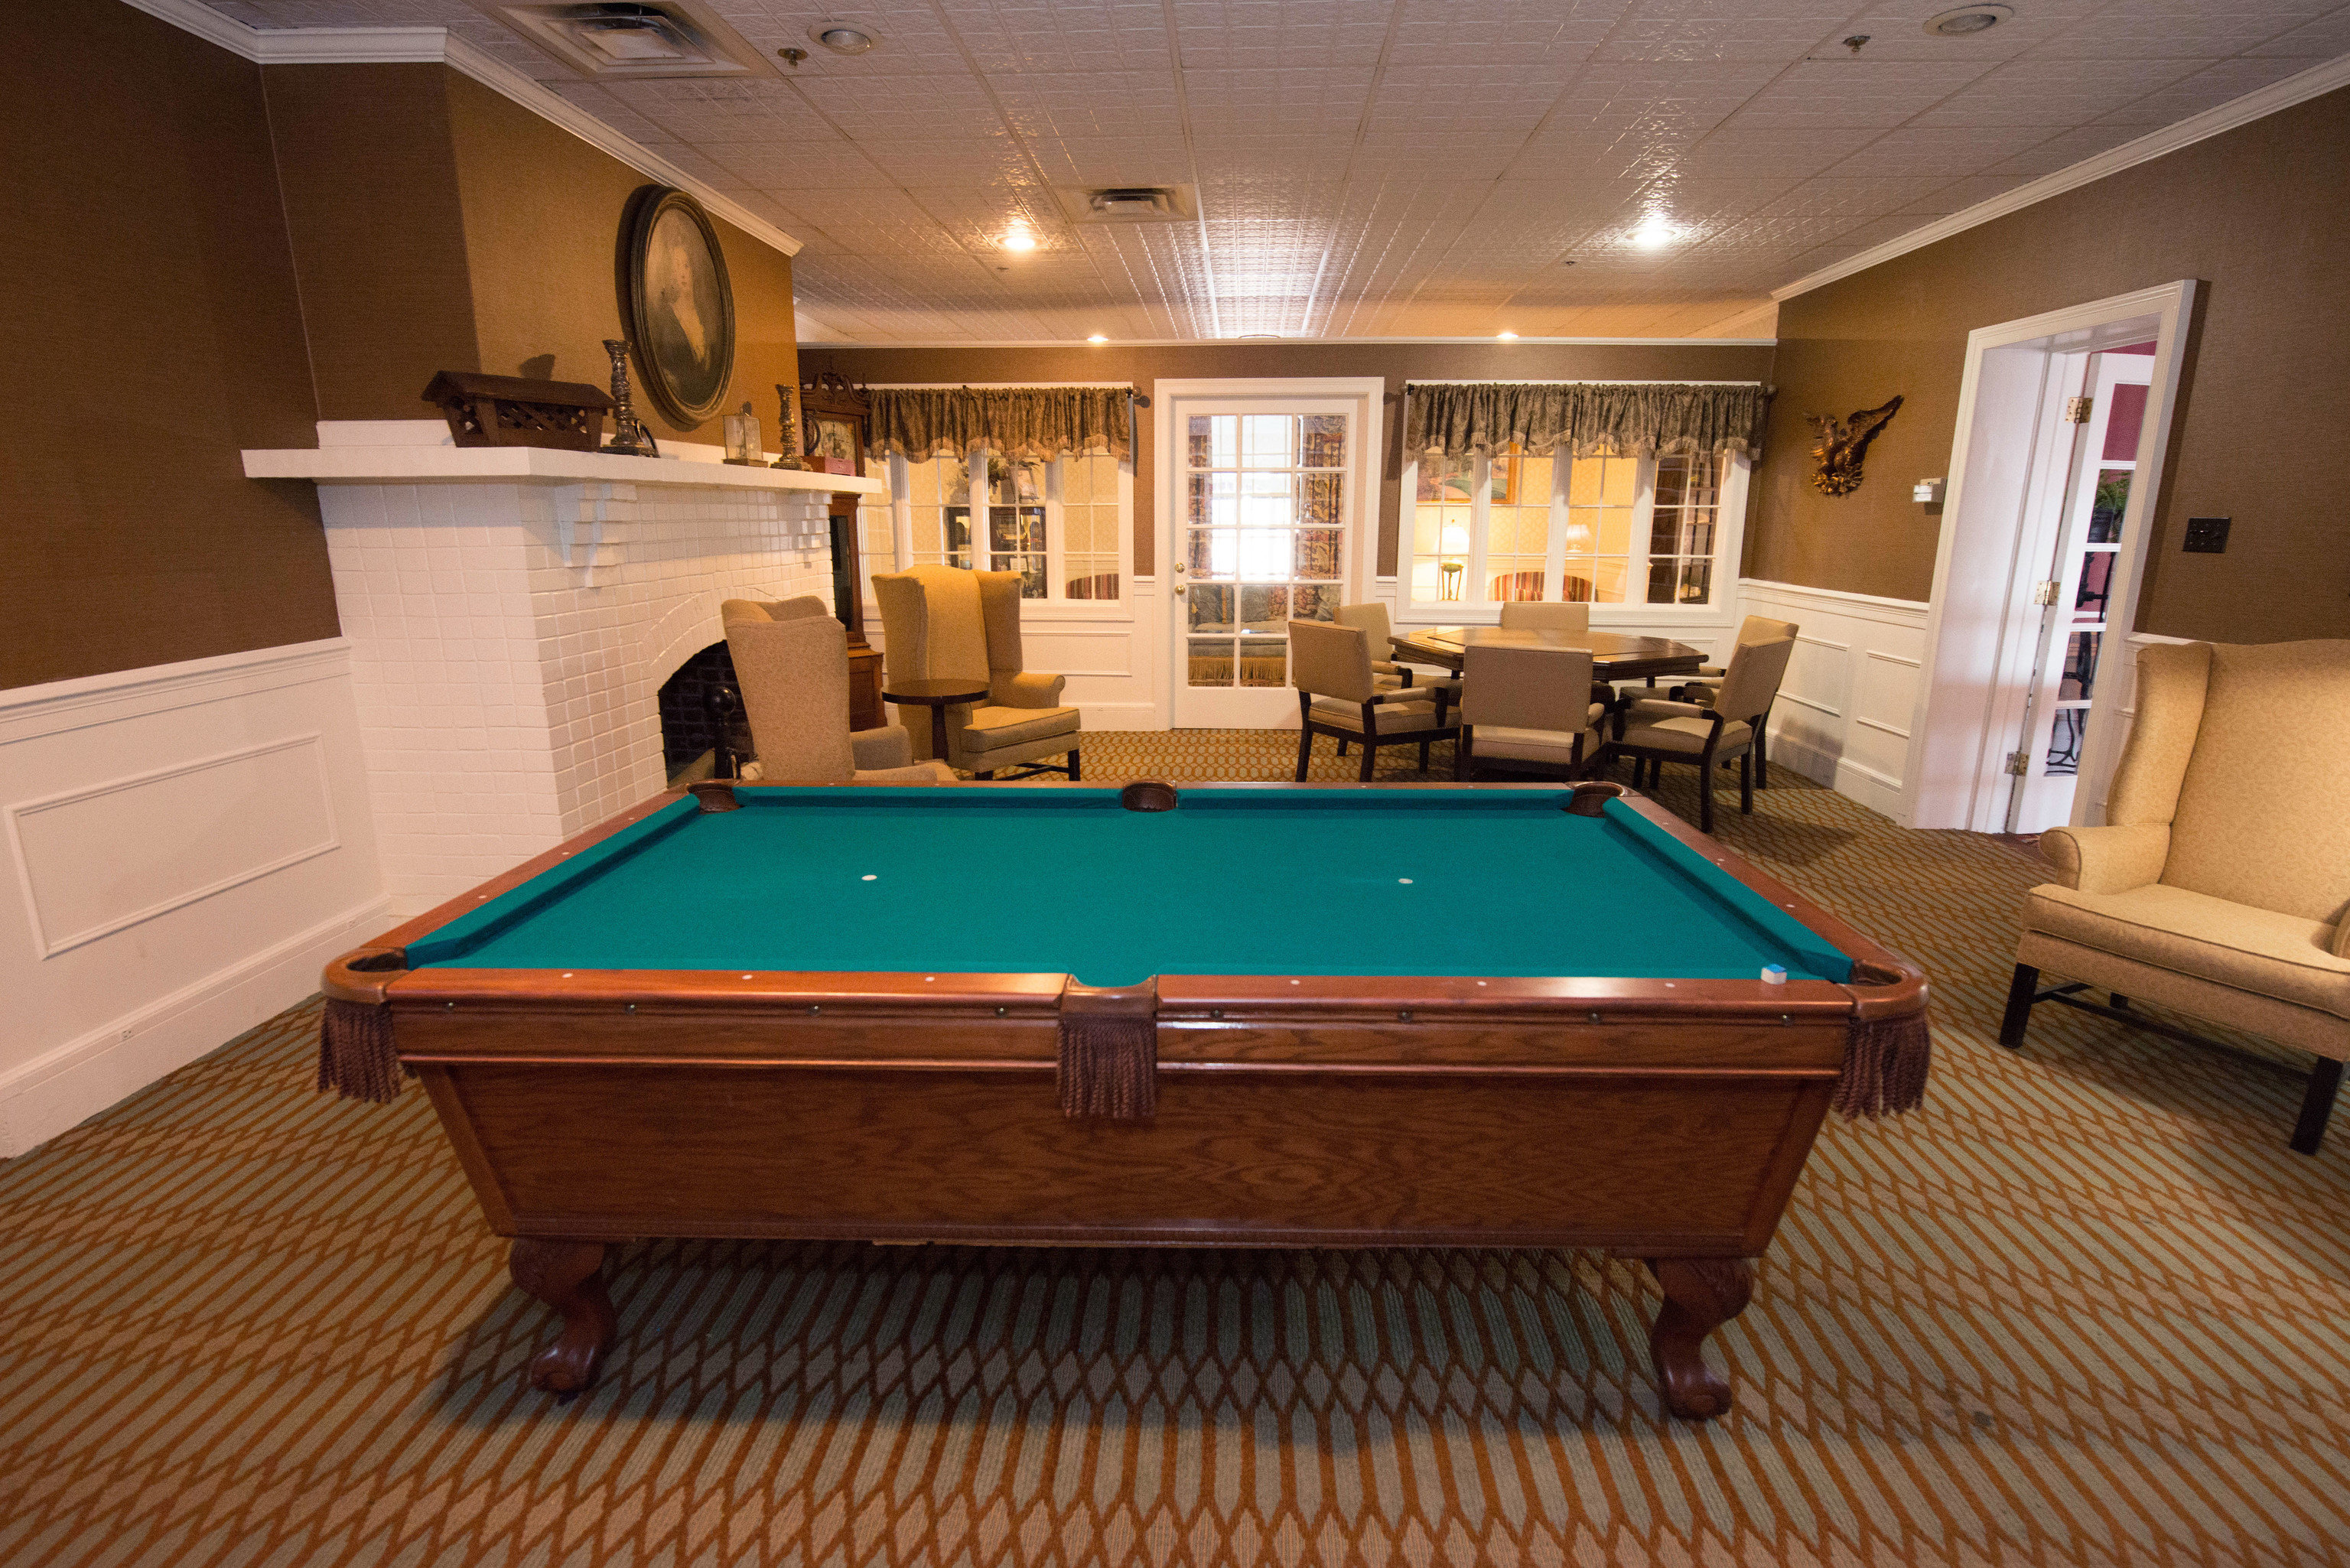 pool table poolroom billiard room recreation room Kitchen pool ball property swimming pool billiard table counter basement games Island